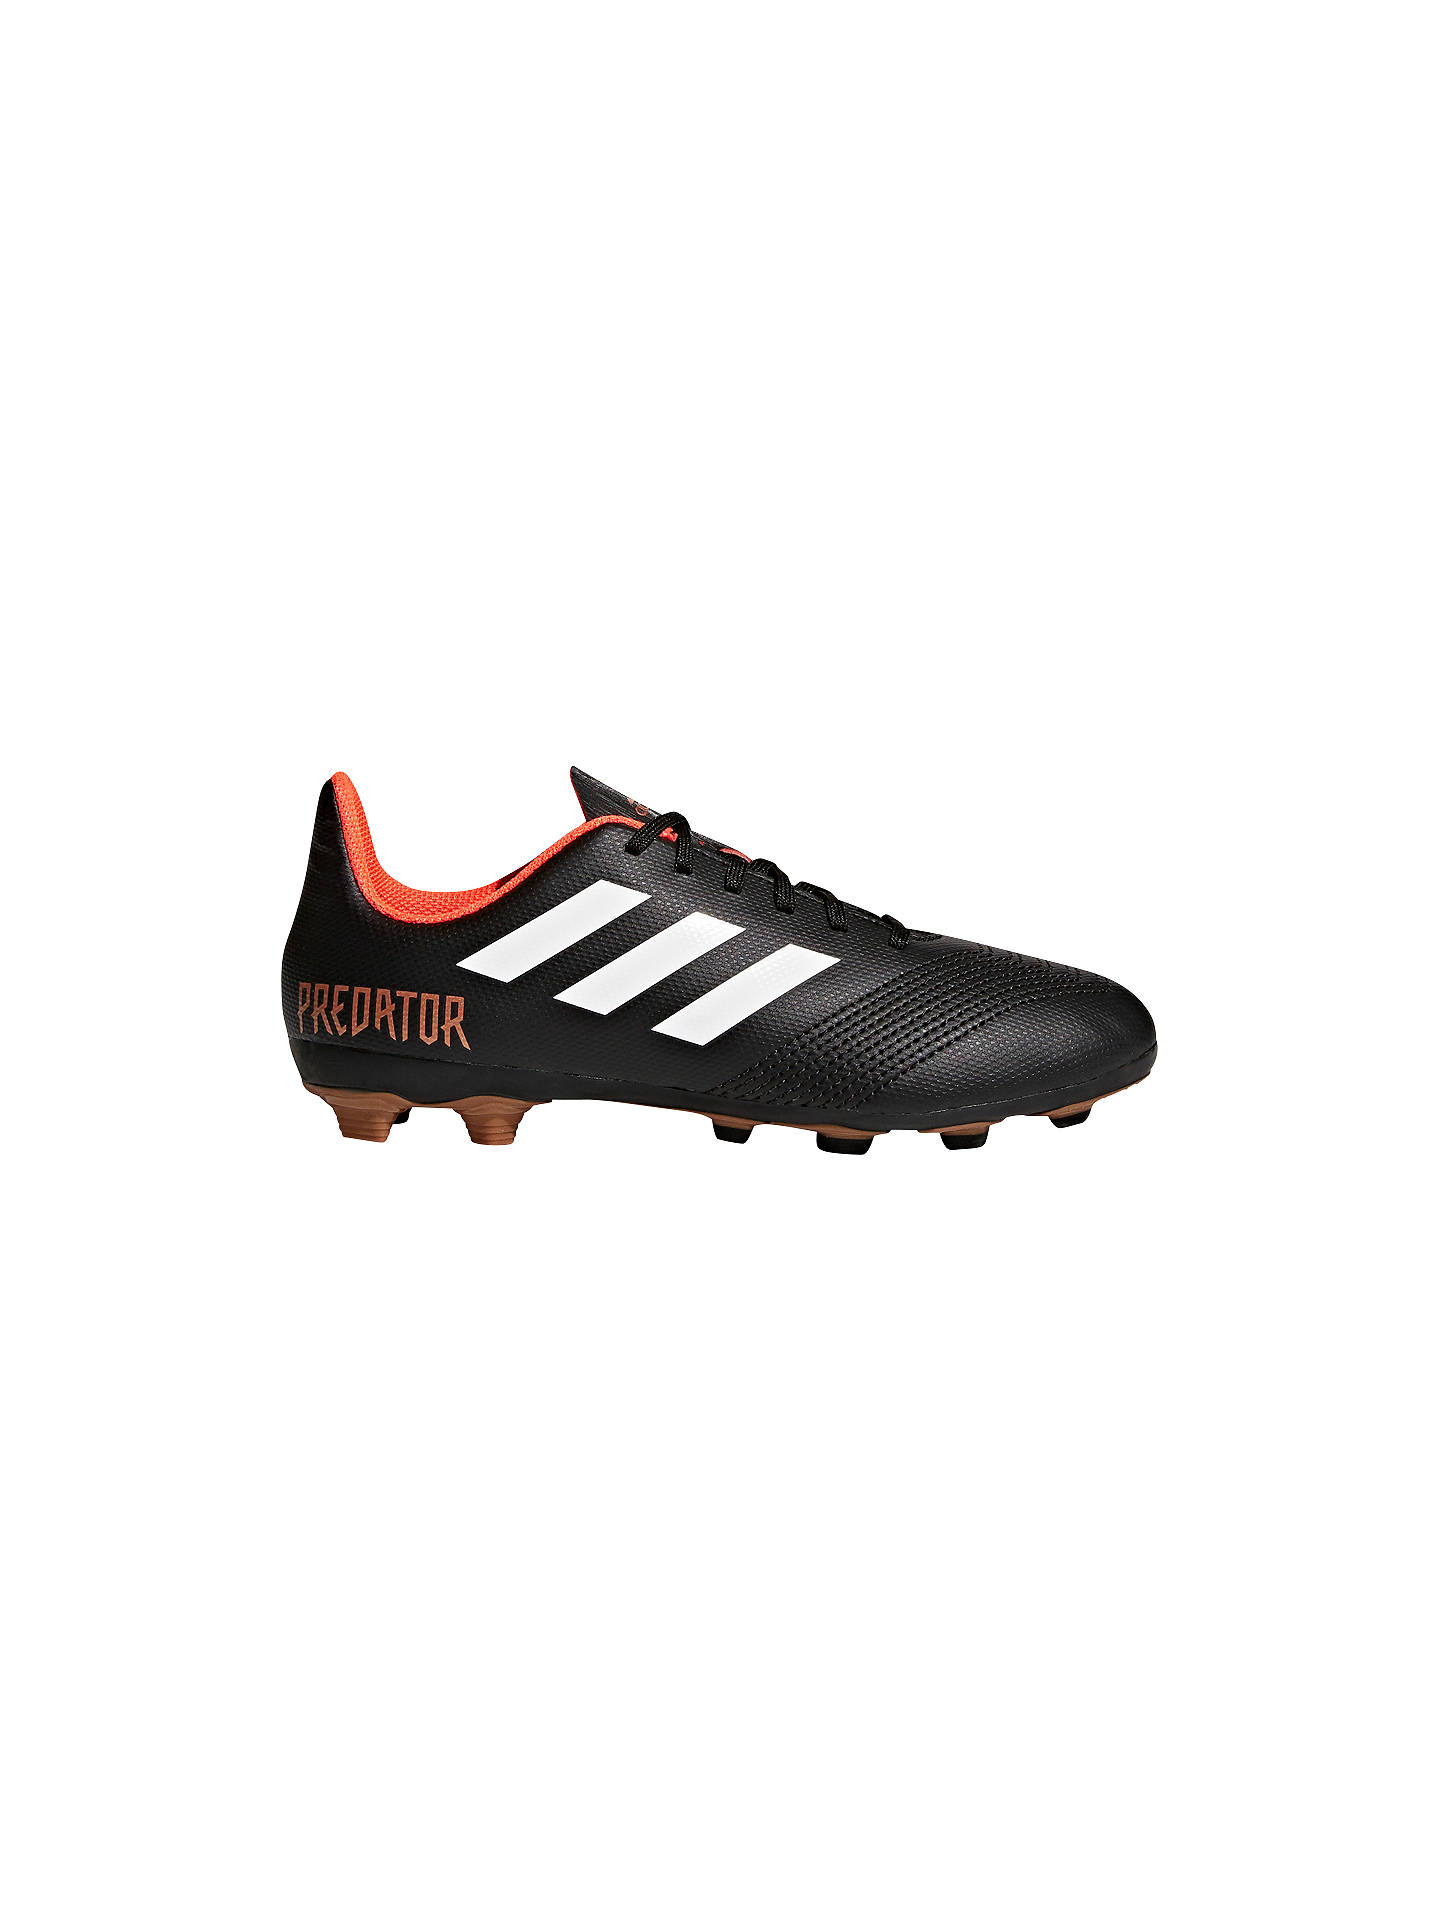 aba4cbed5b8 adidas Children s Predator Tango 18.4 Football Boots at John Lewis ...